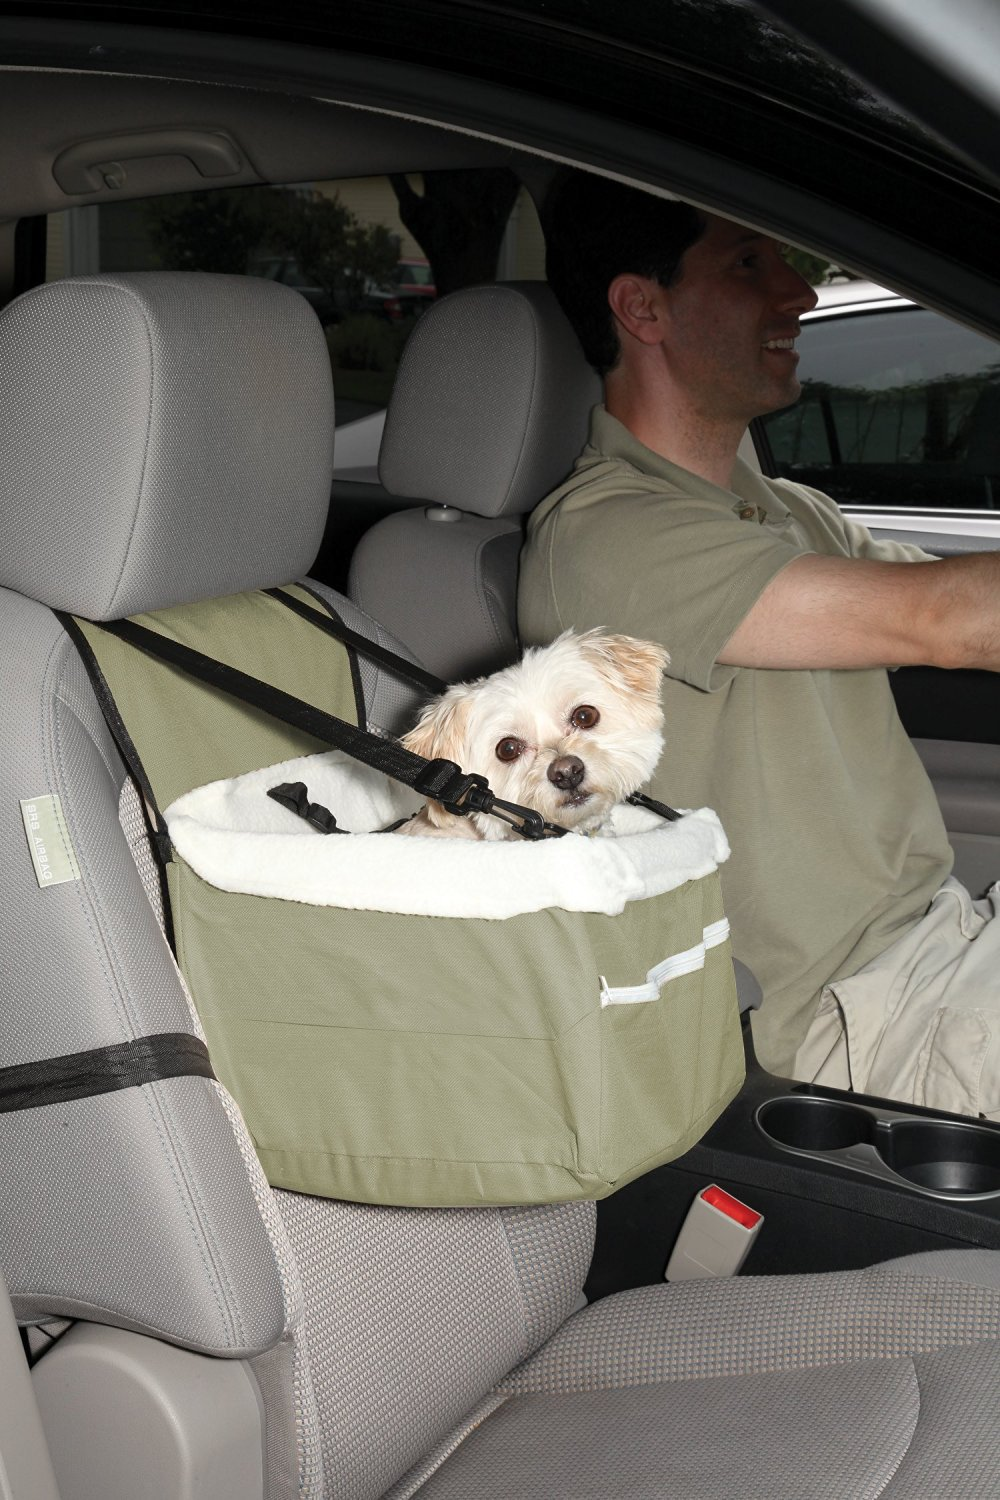 Amazon.com : Ideas In Life Portable Car Pet Booster Seat With Clip On  Safety Leash And Zipper Storage Pocket : Pet Supplies